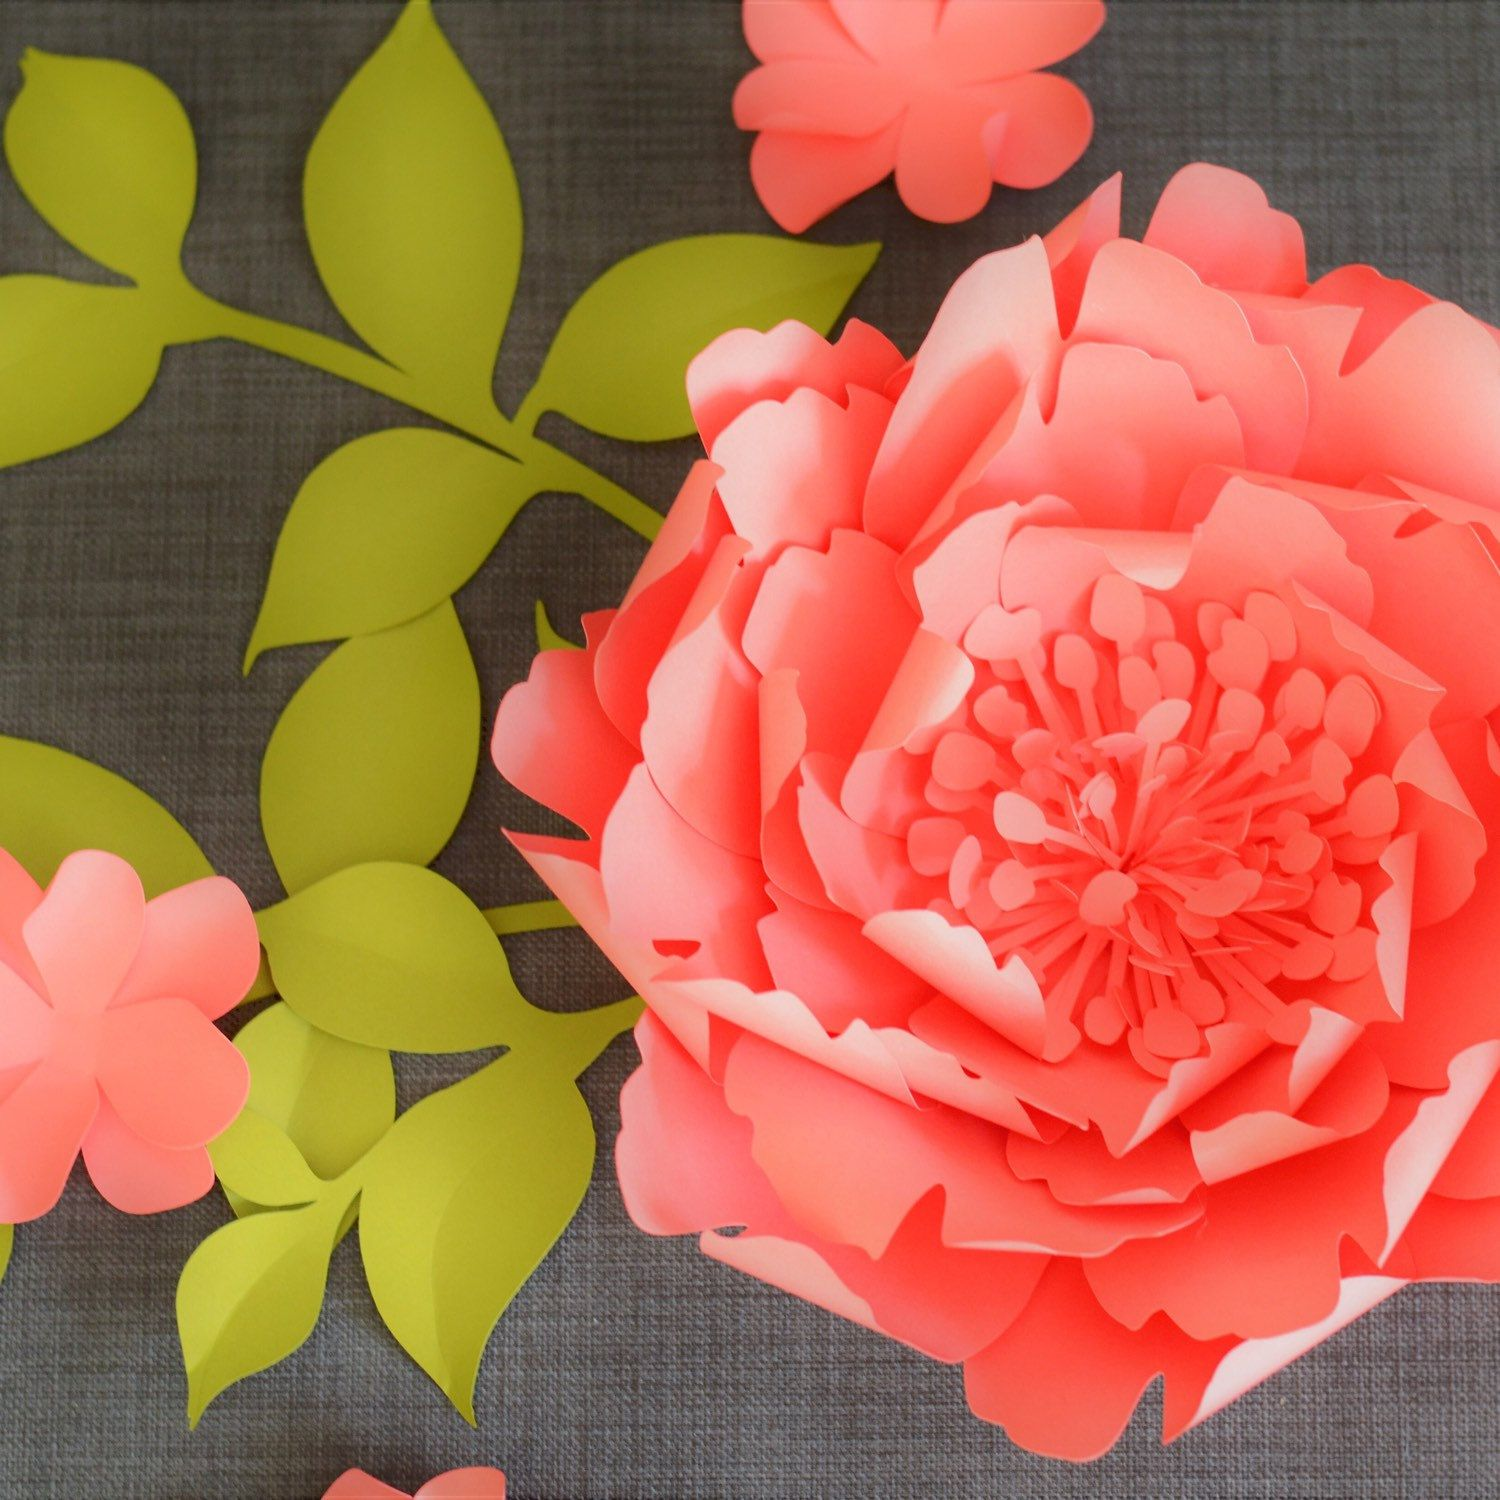 Seattlegiantflowers Shared A New Photo On Paper Flowers Template